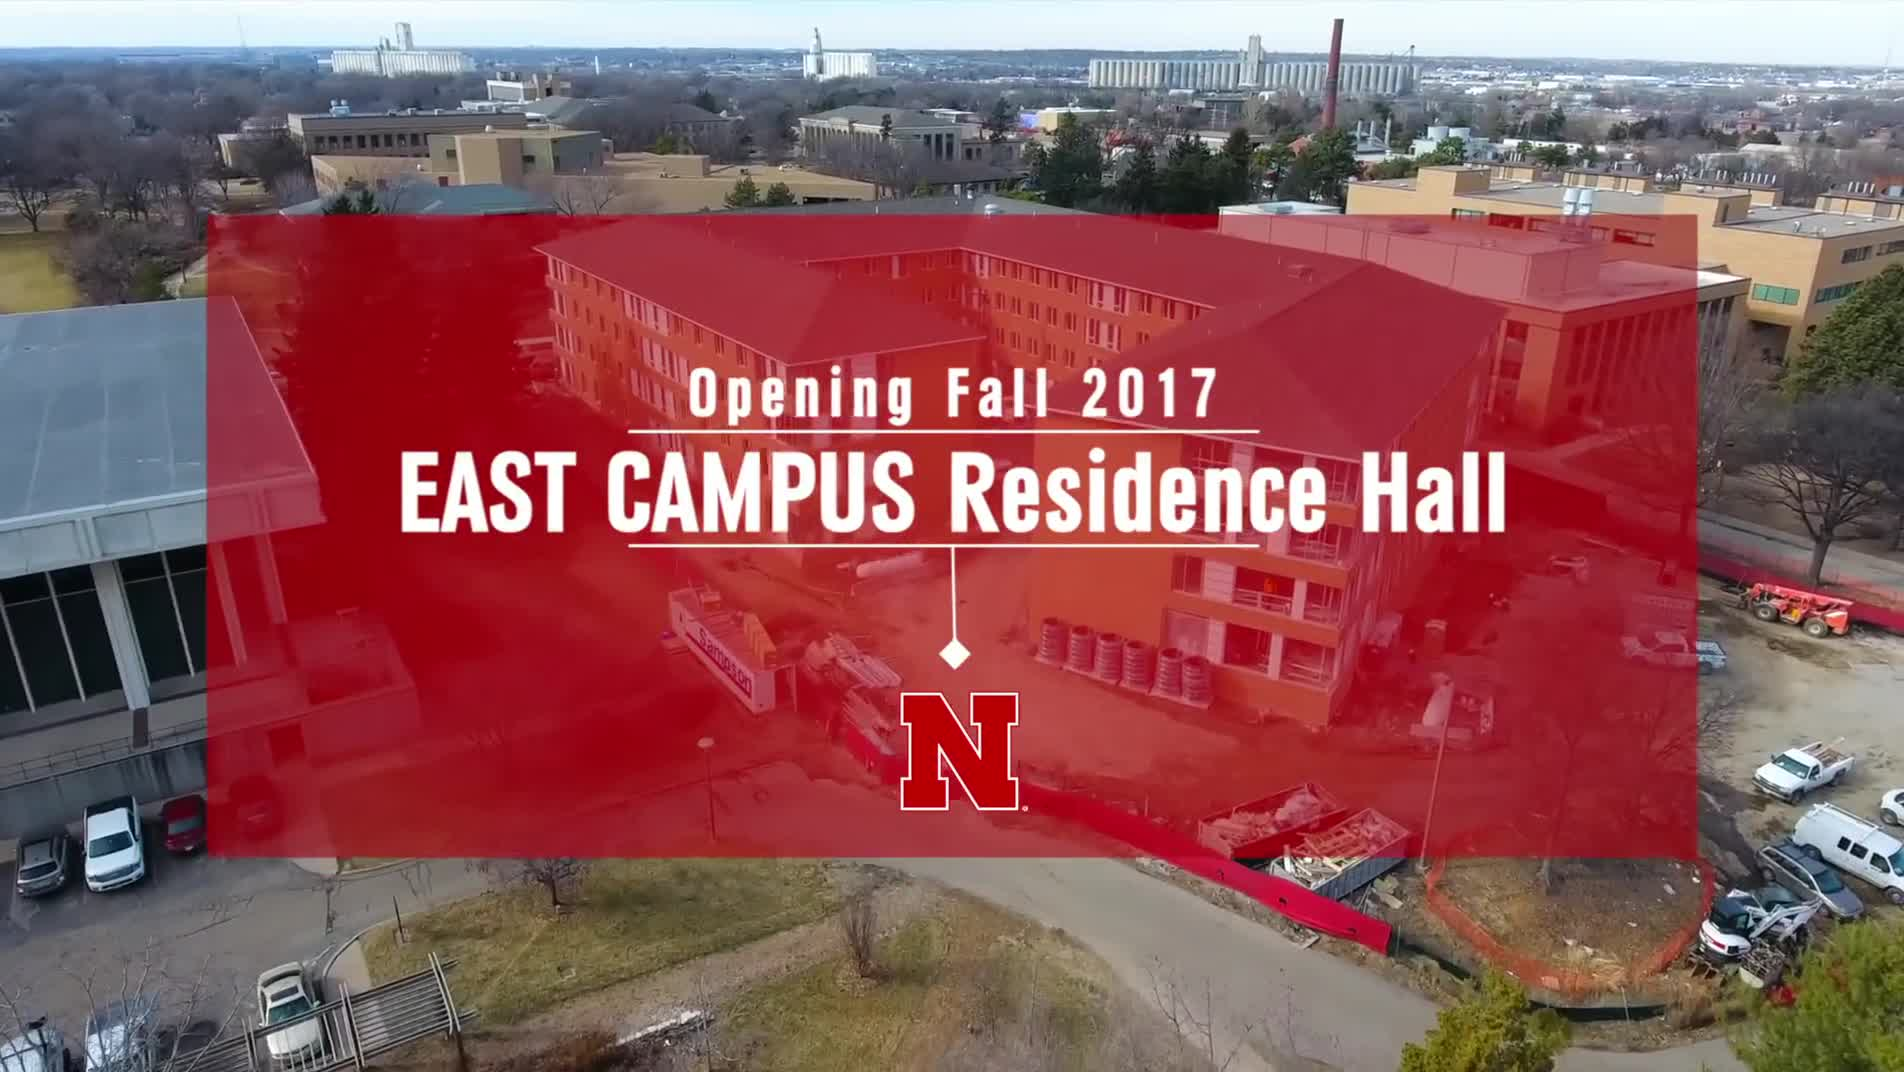 New for 2017: Massengale Hall